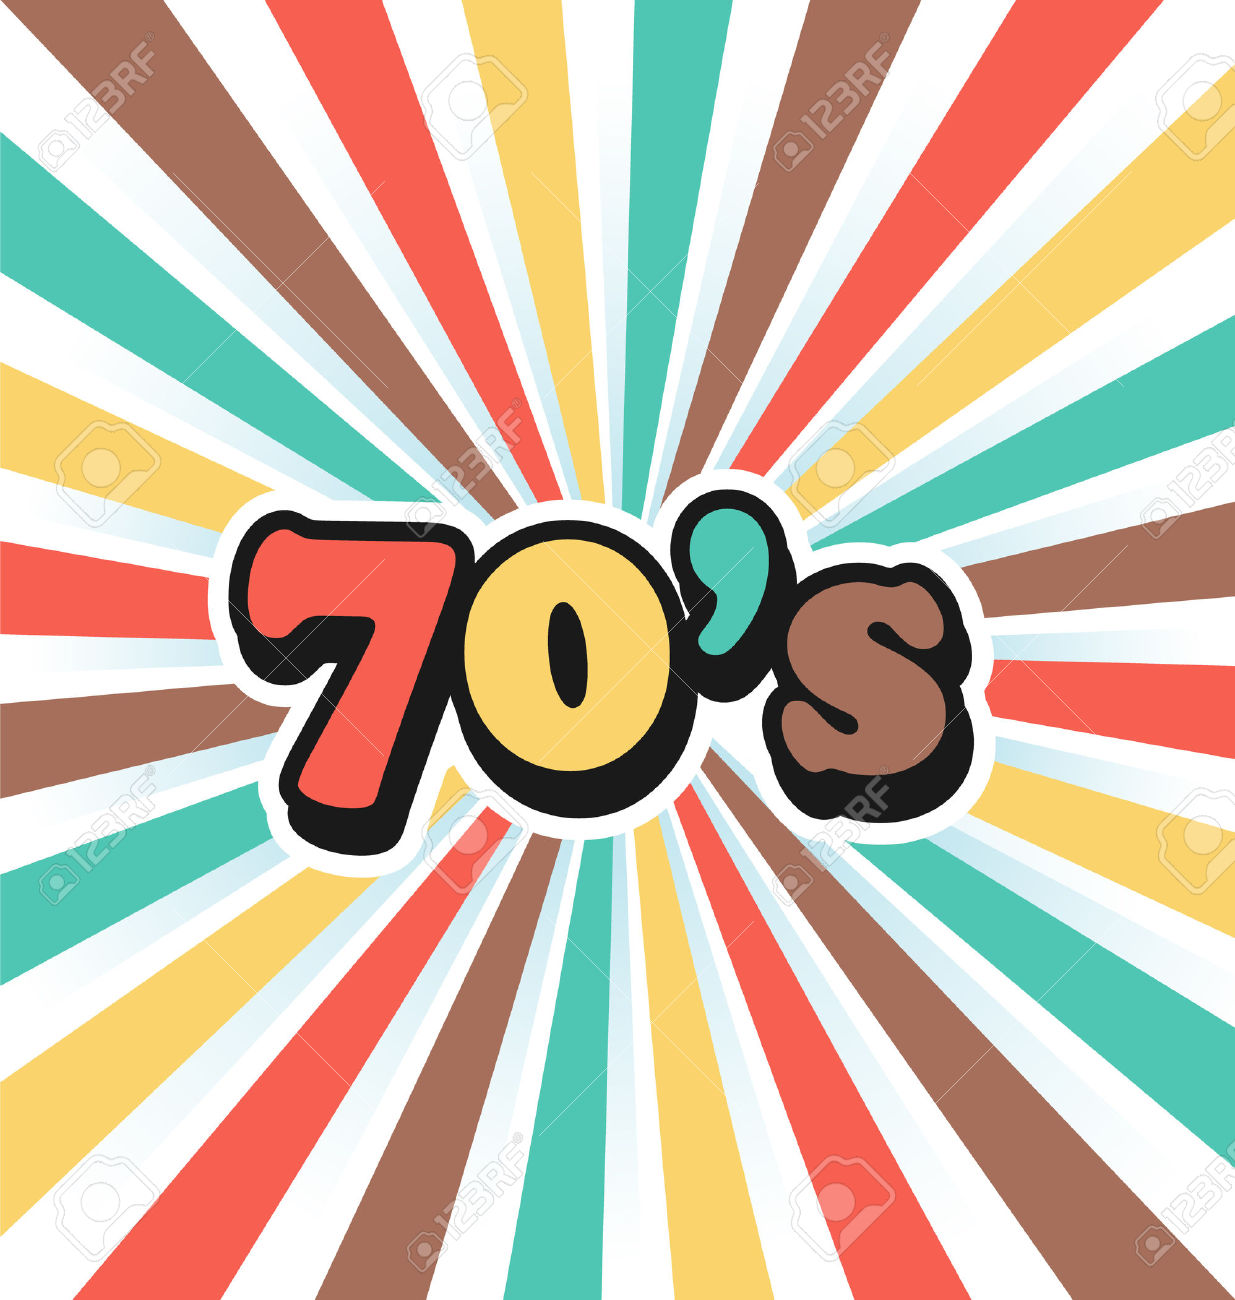 should you have been young in the 50s or 70s playbuzz